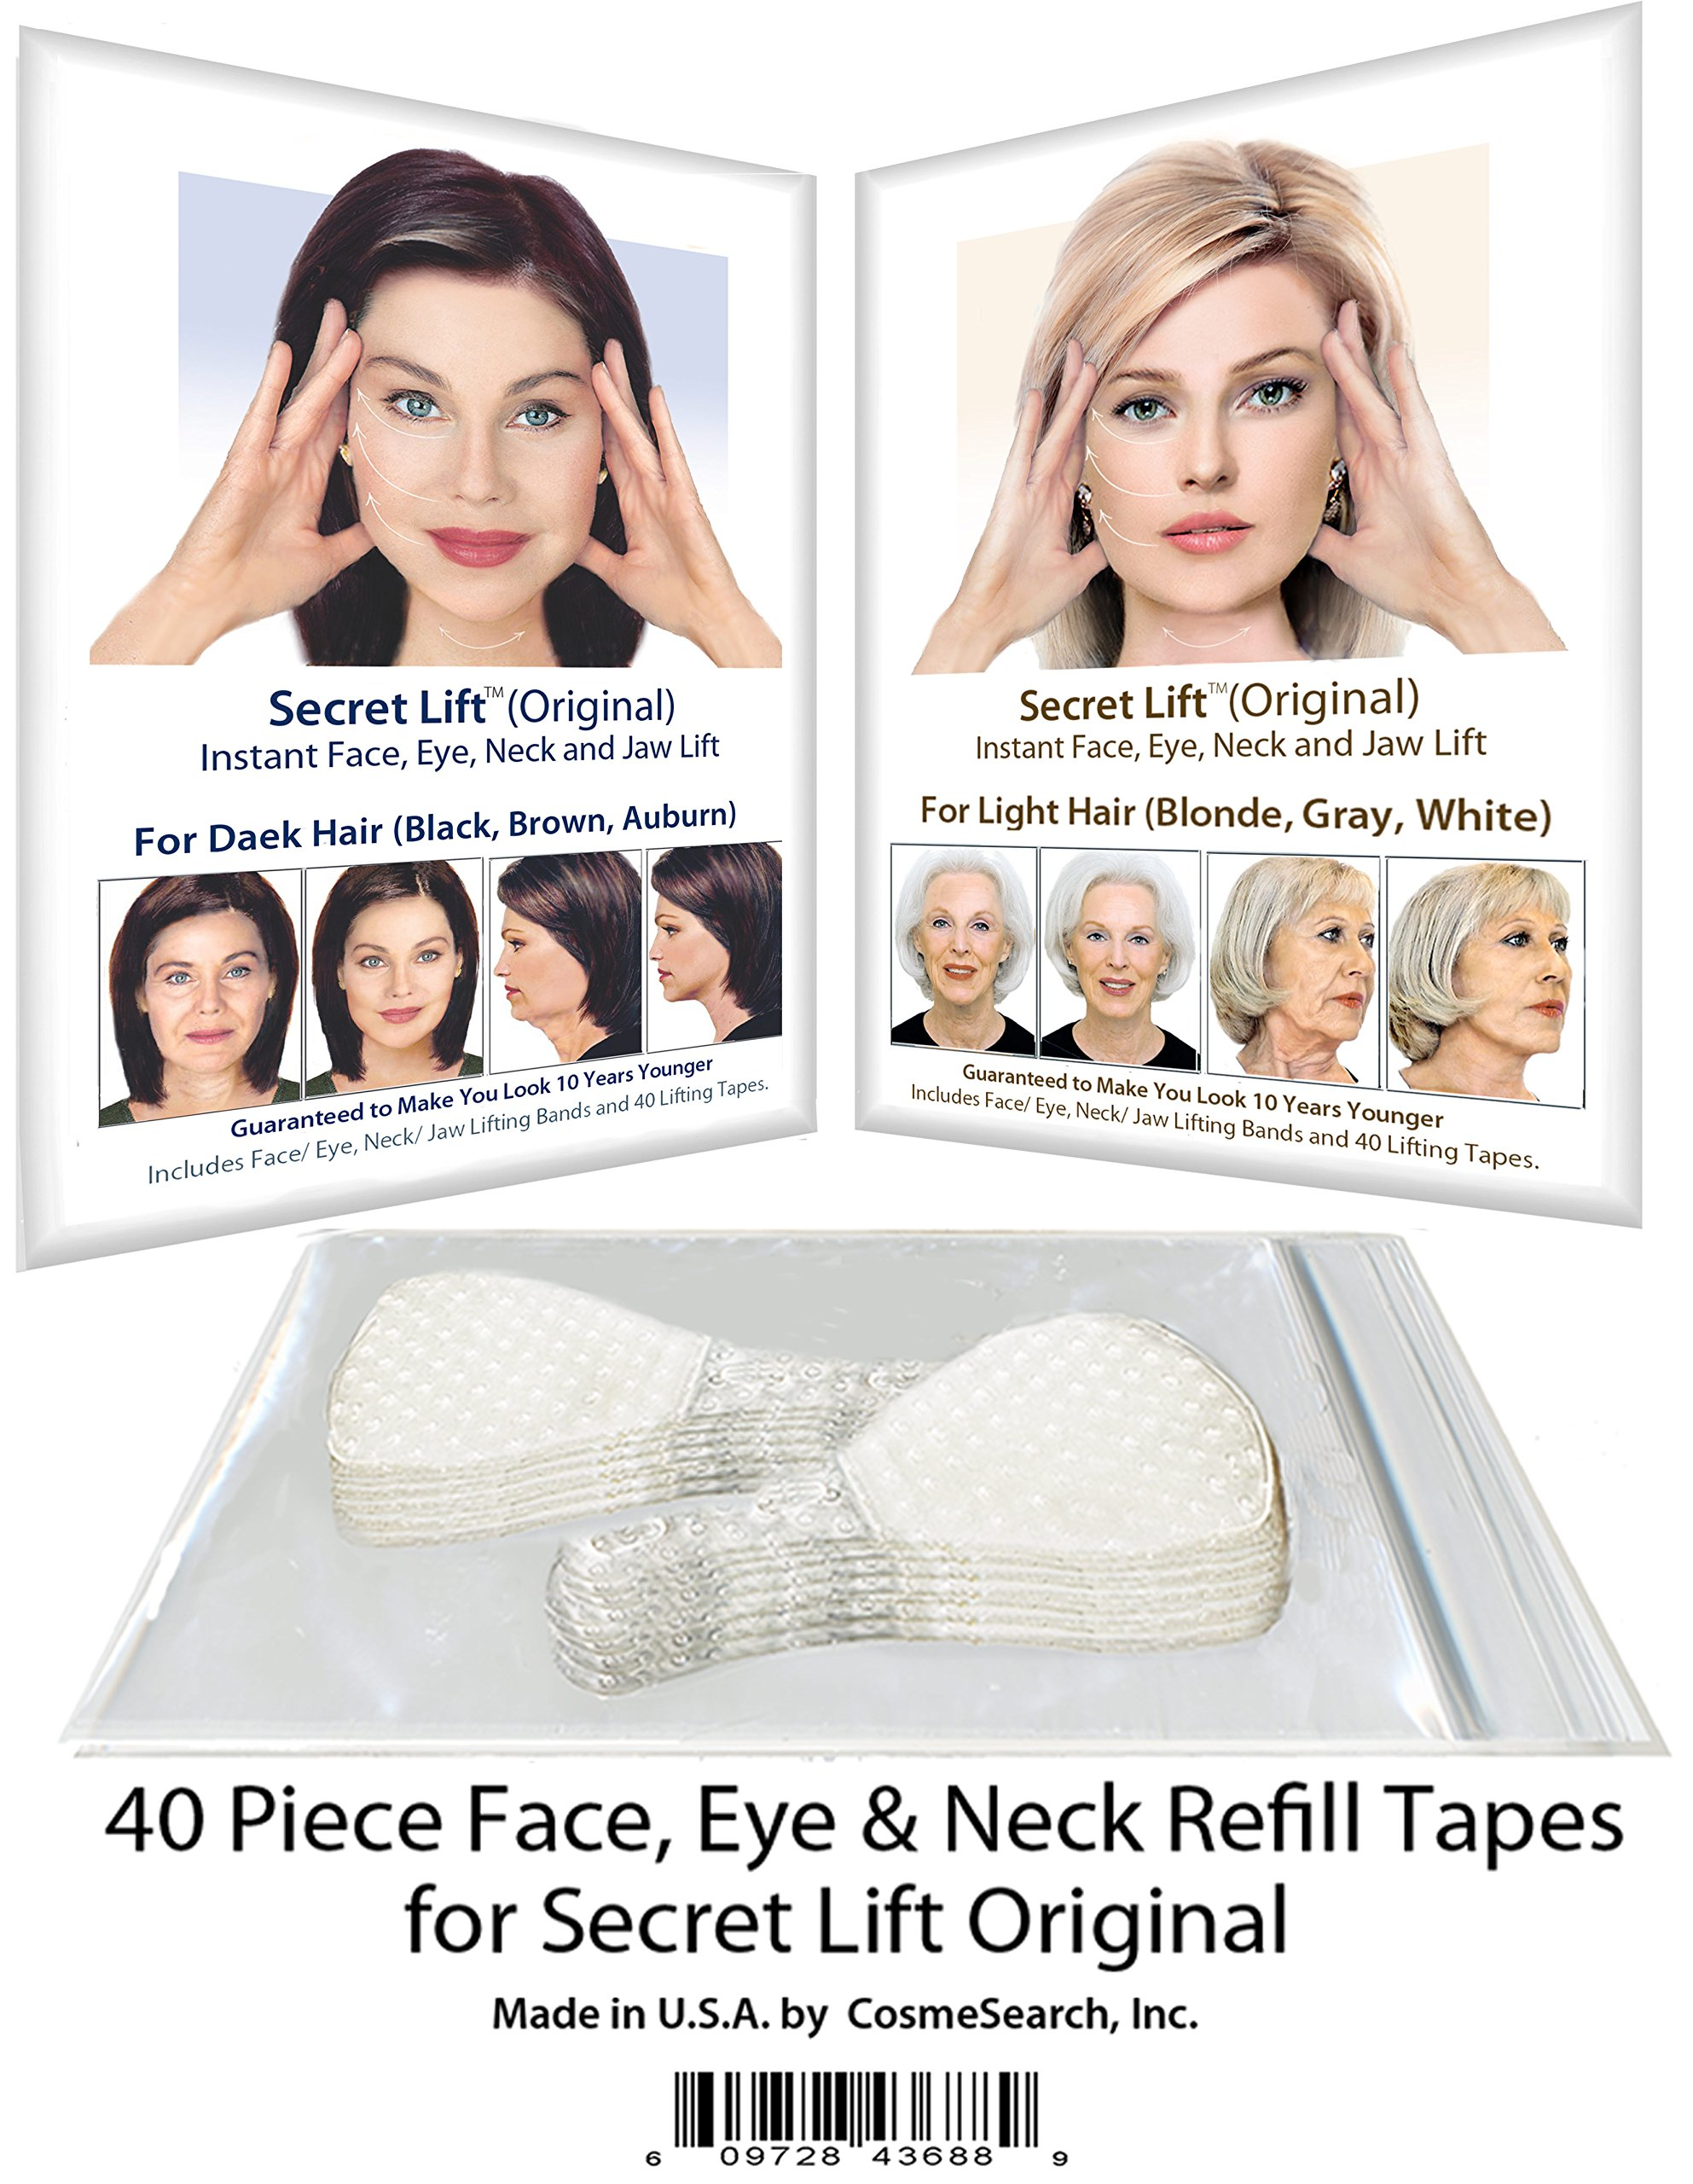 40 Piece Refill Tapes for Instant Face, Neck and Eye Lift Kit